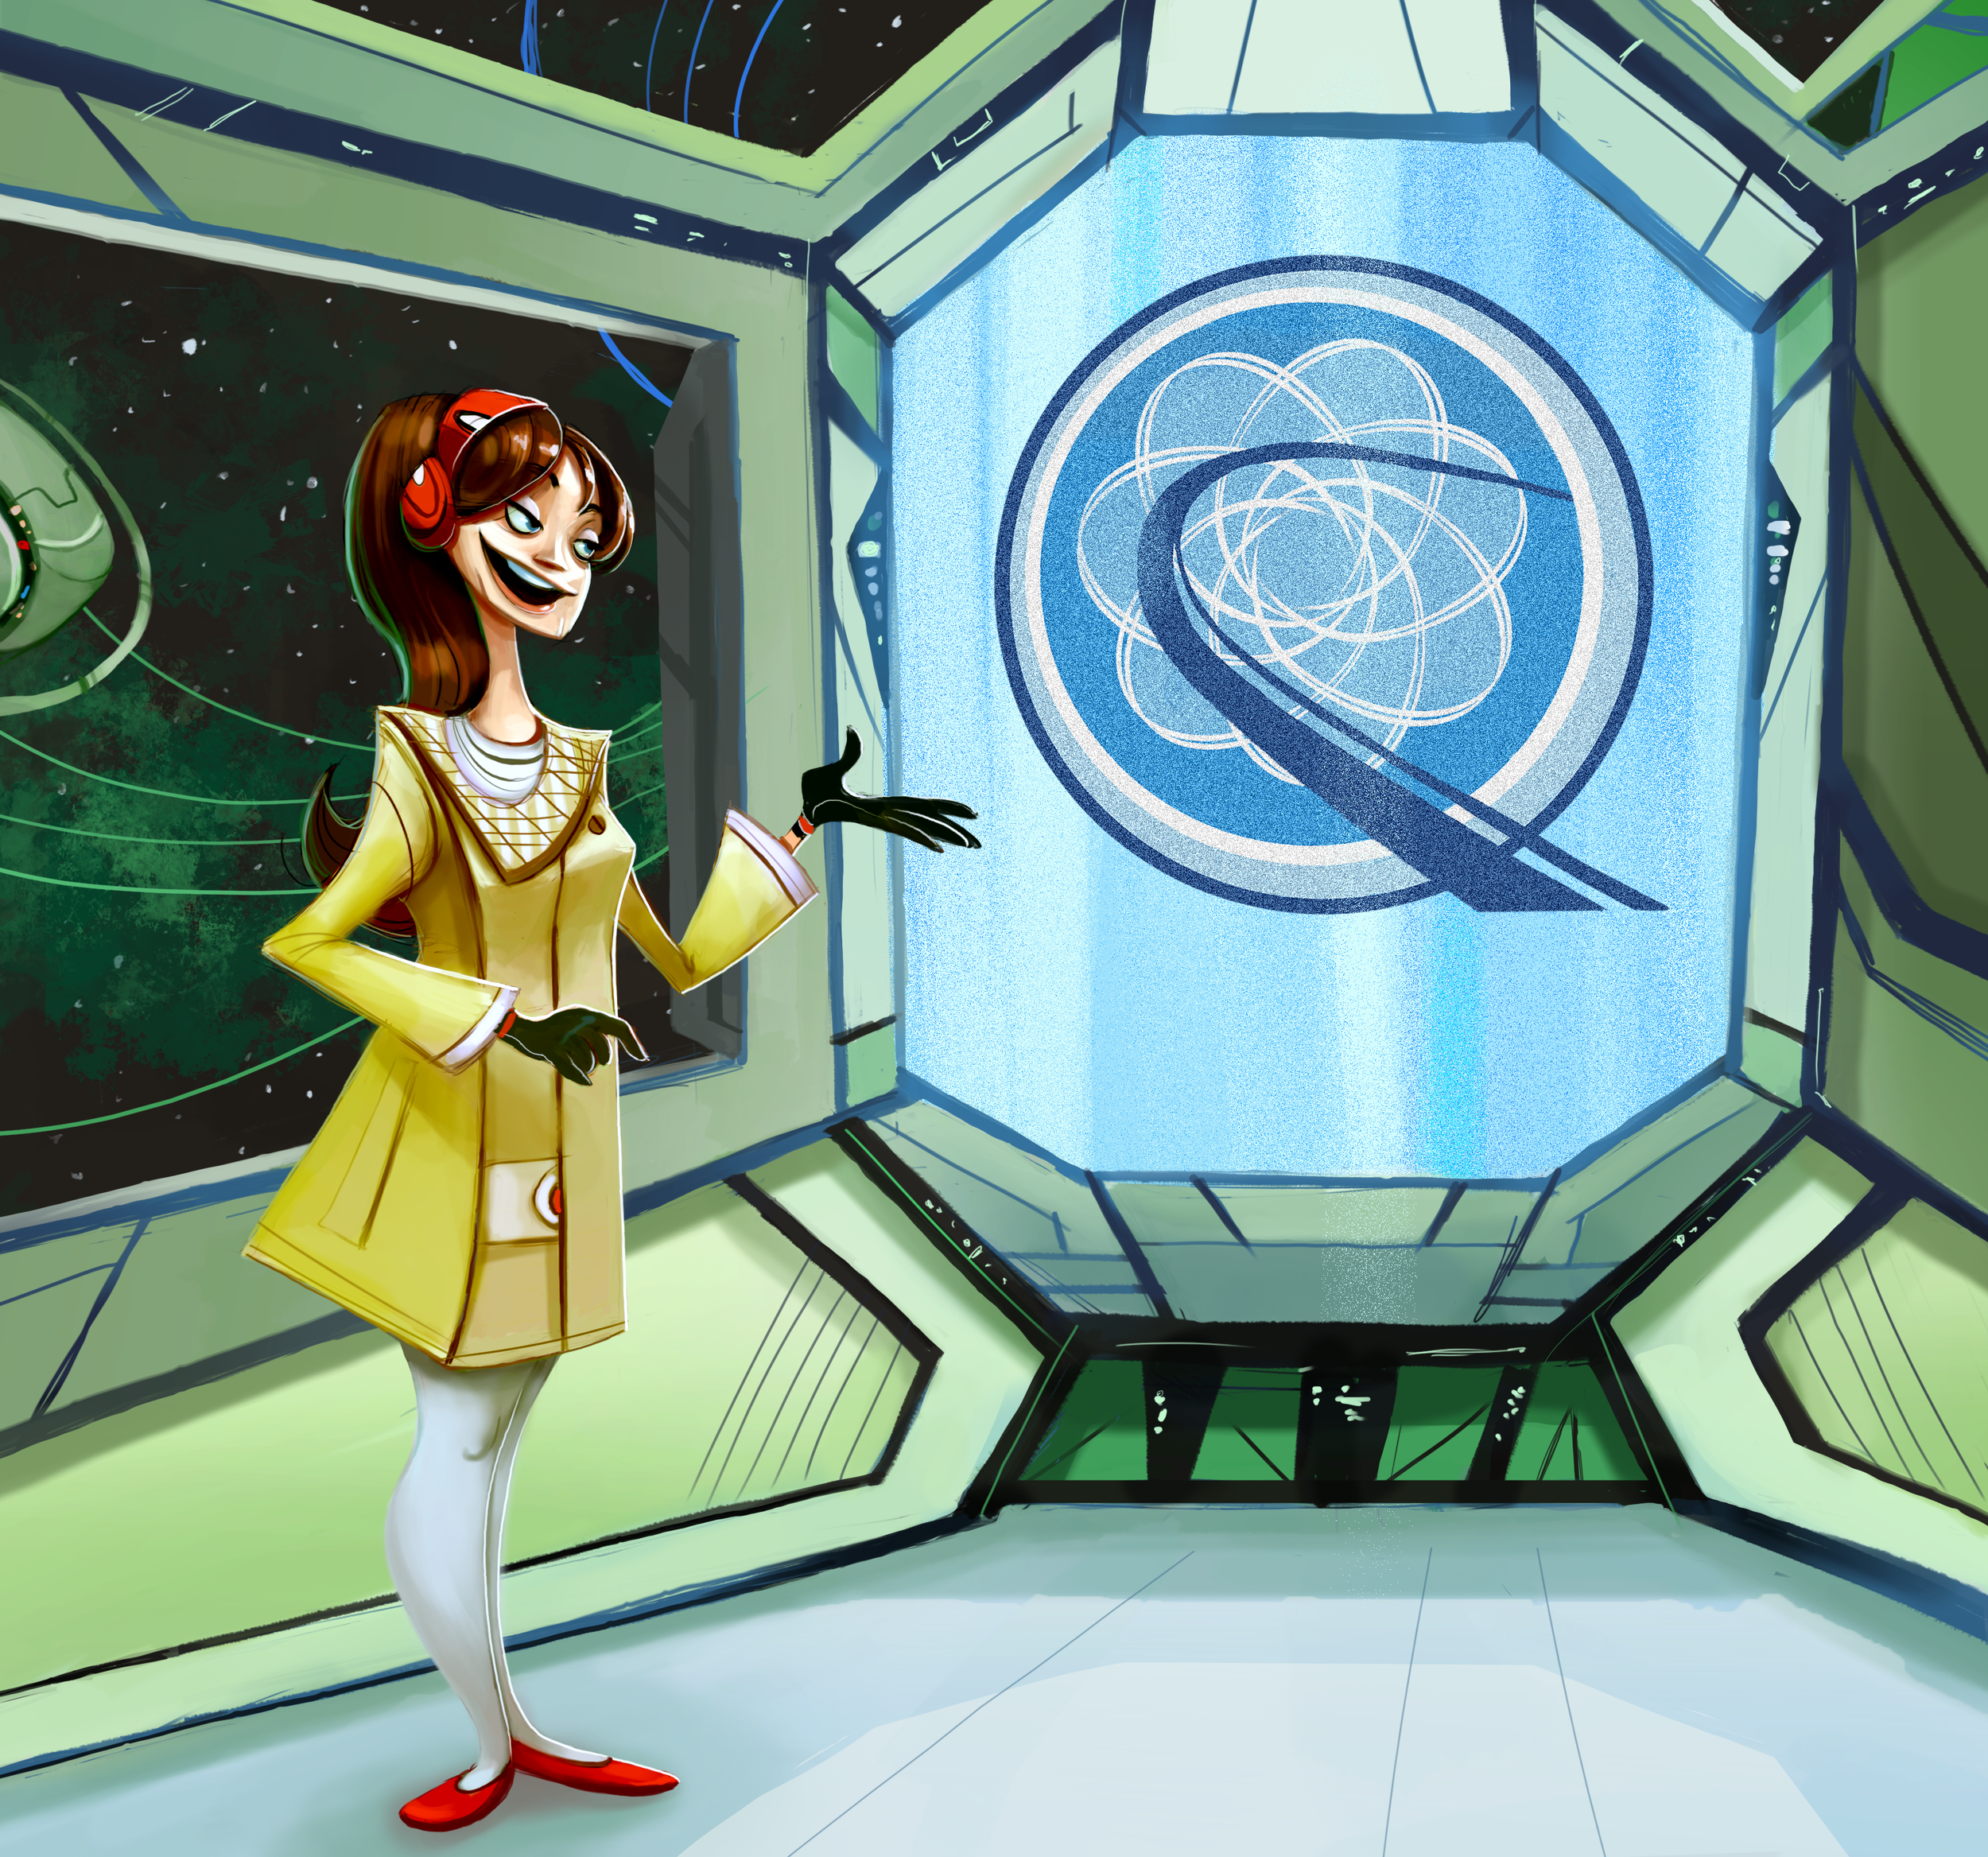 Welcome to Electron Lagoon, the cutting edge space station created by the group Quasar Flood. This is Lena, Quasar Flood's spokesperson and official Electron Lagoon tour guide.